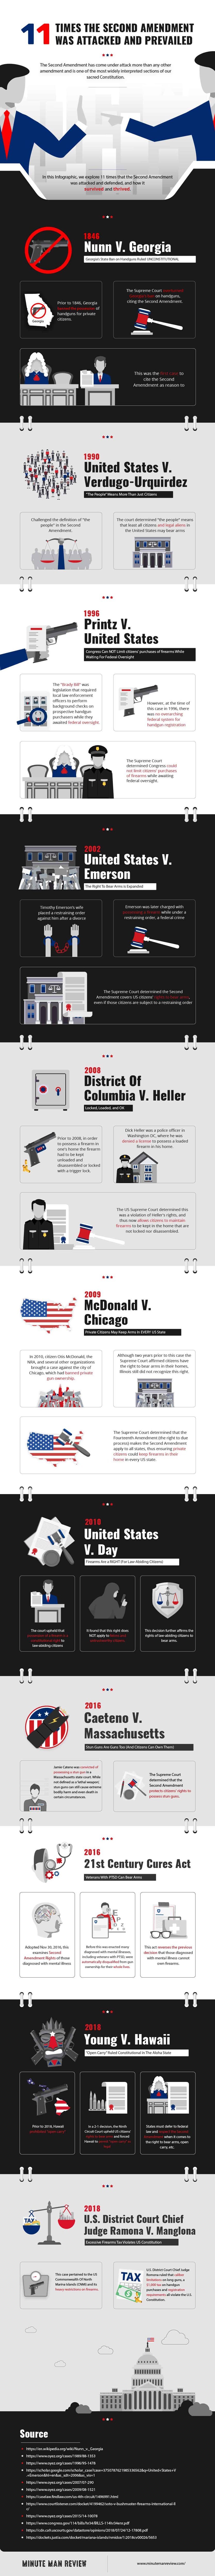 11-TIMES-THE-SECOND-AMENDMENT-WAS-ATTACKED-AND-PREVAILED-infographic-plaza